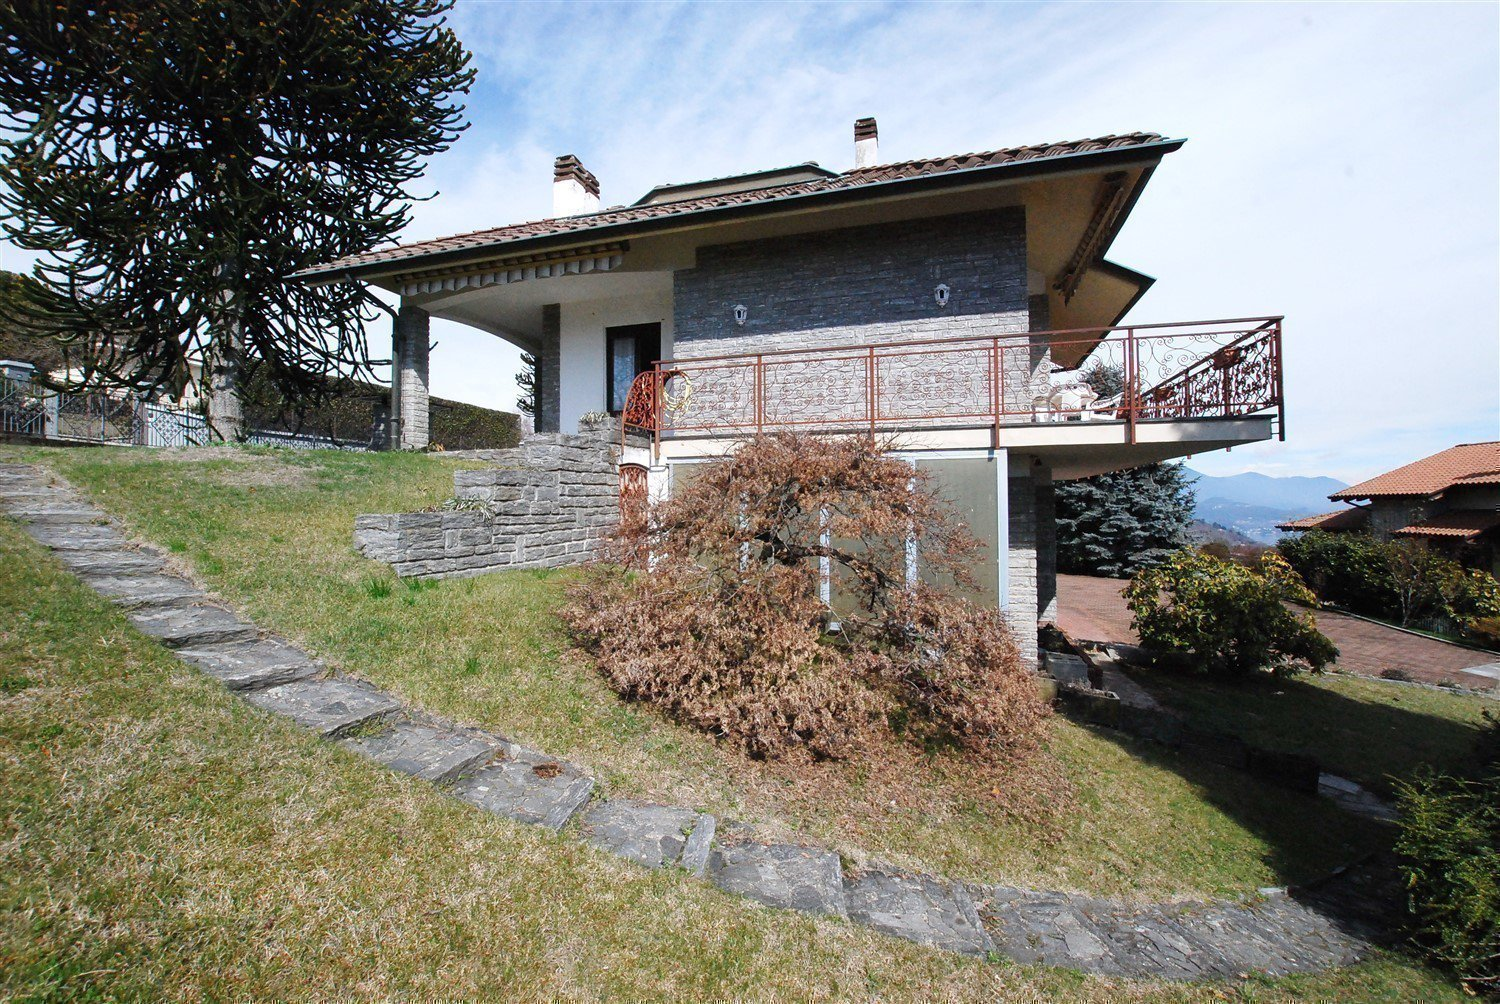 Wonderful lake view vila for sale in Massino Visconti - villa with terrace